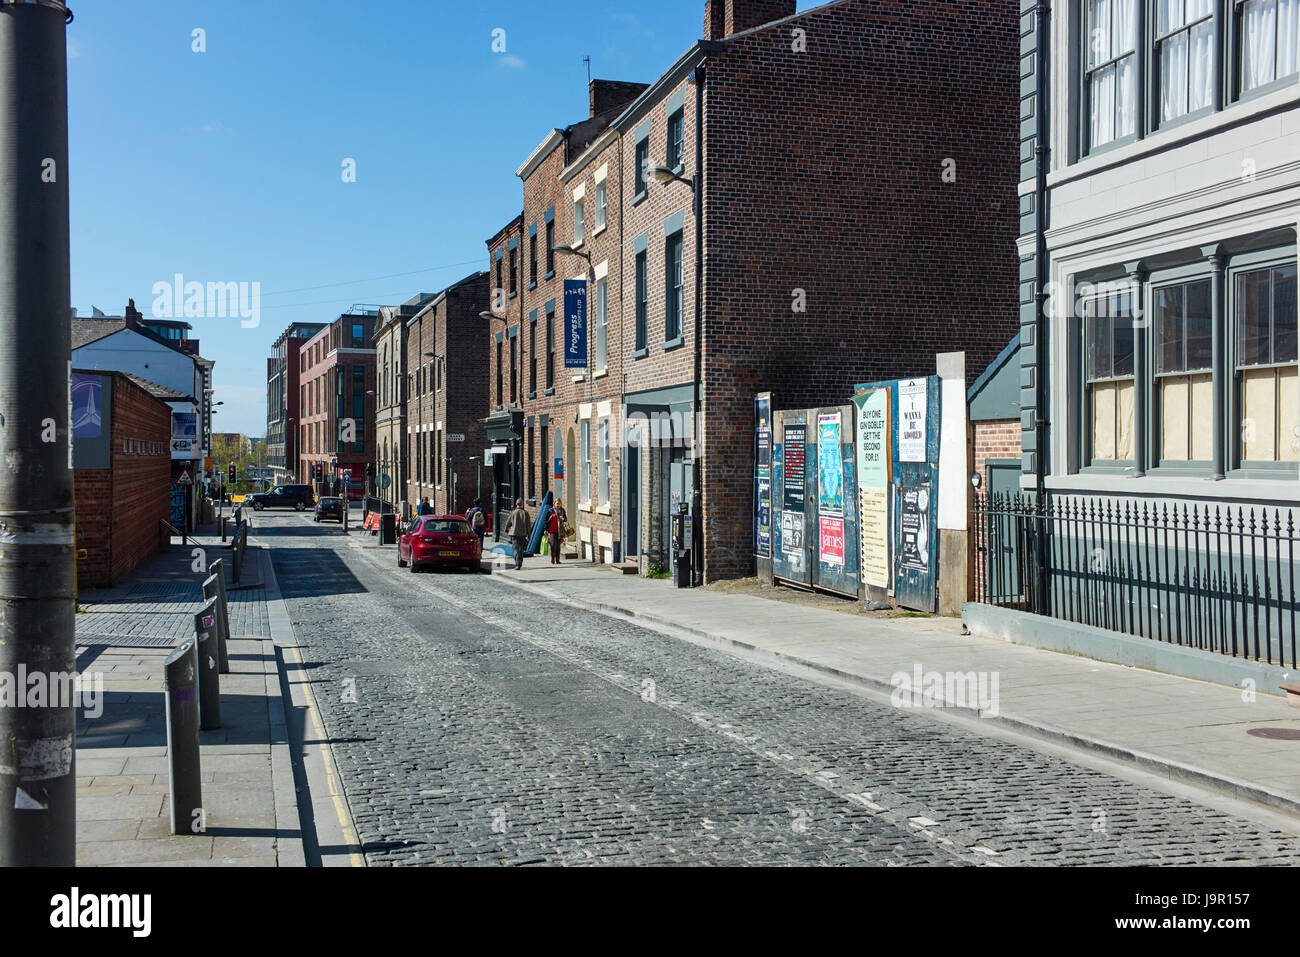 Looking towards Baltic Triangle area of Liverpool from Bold Street area - Stock Image